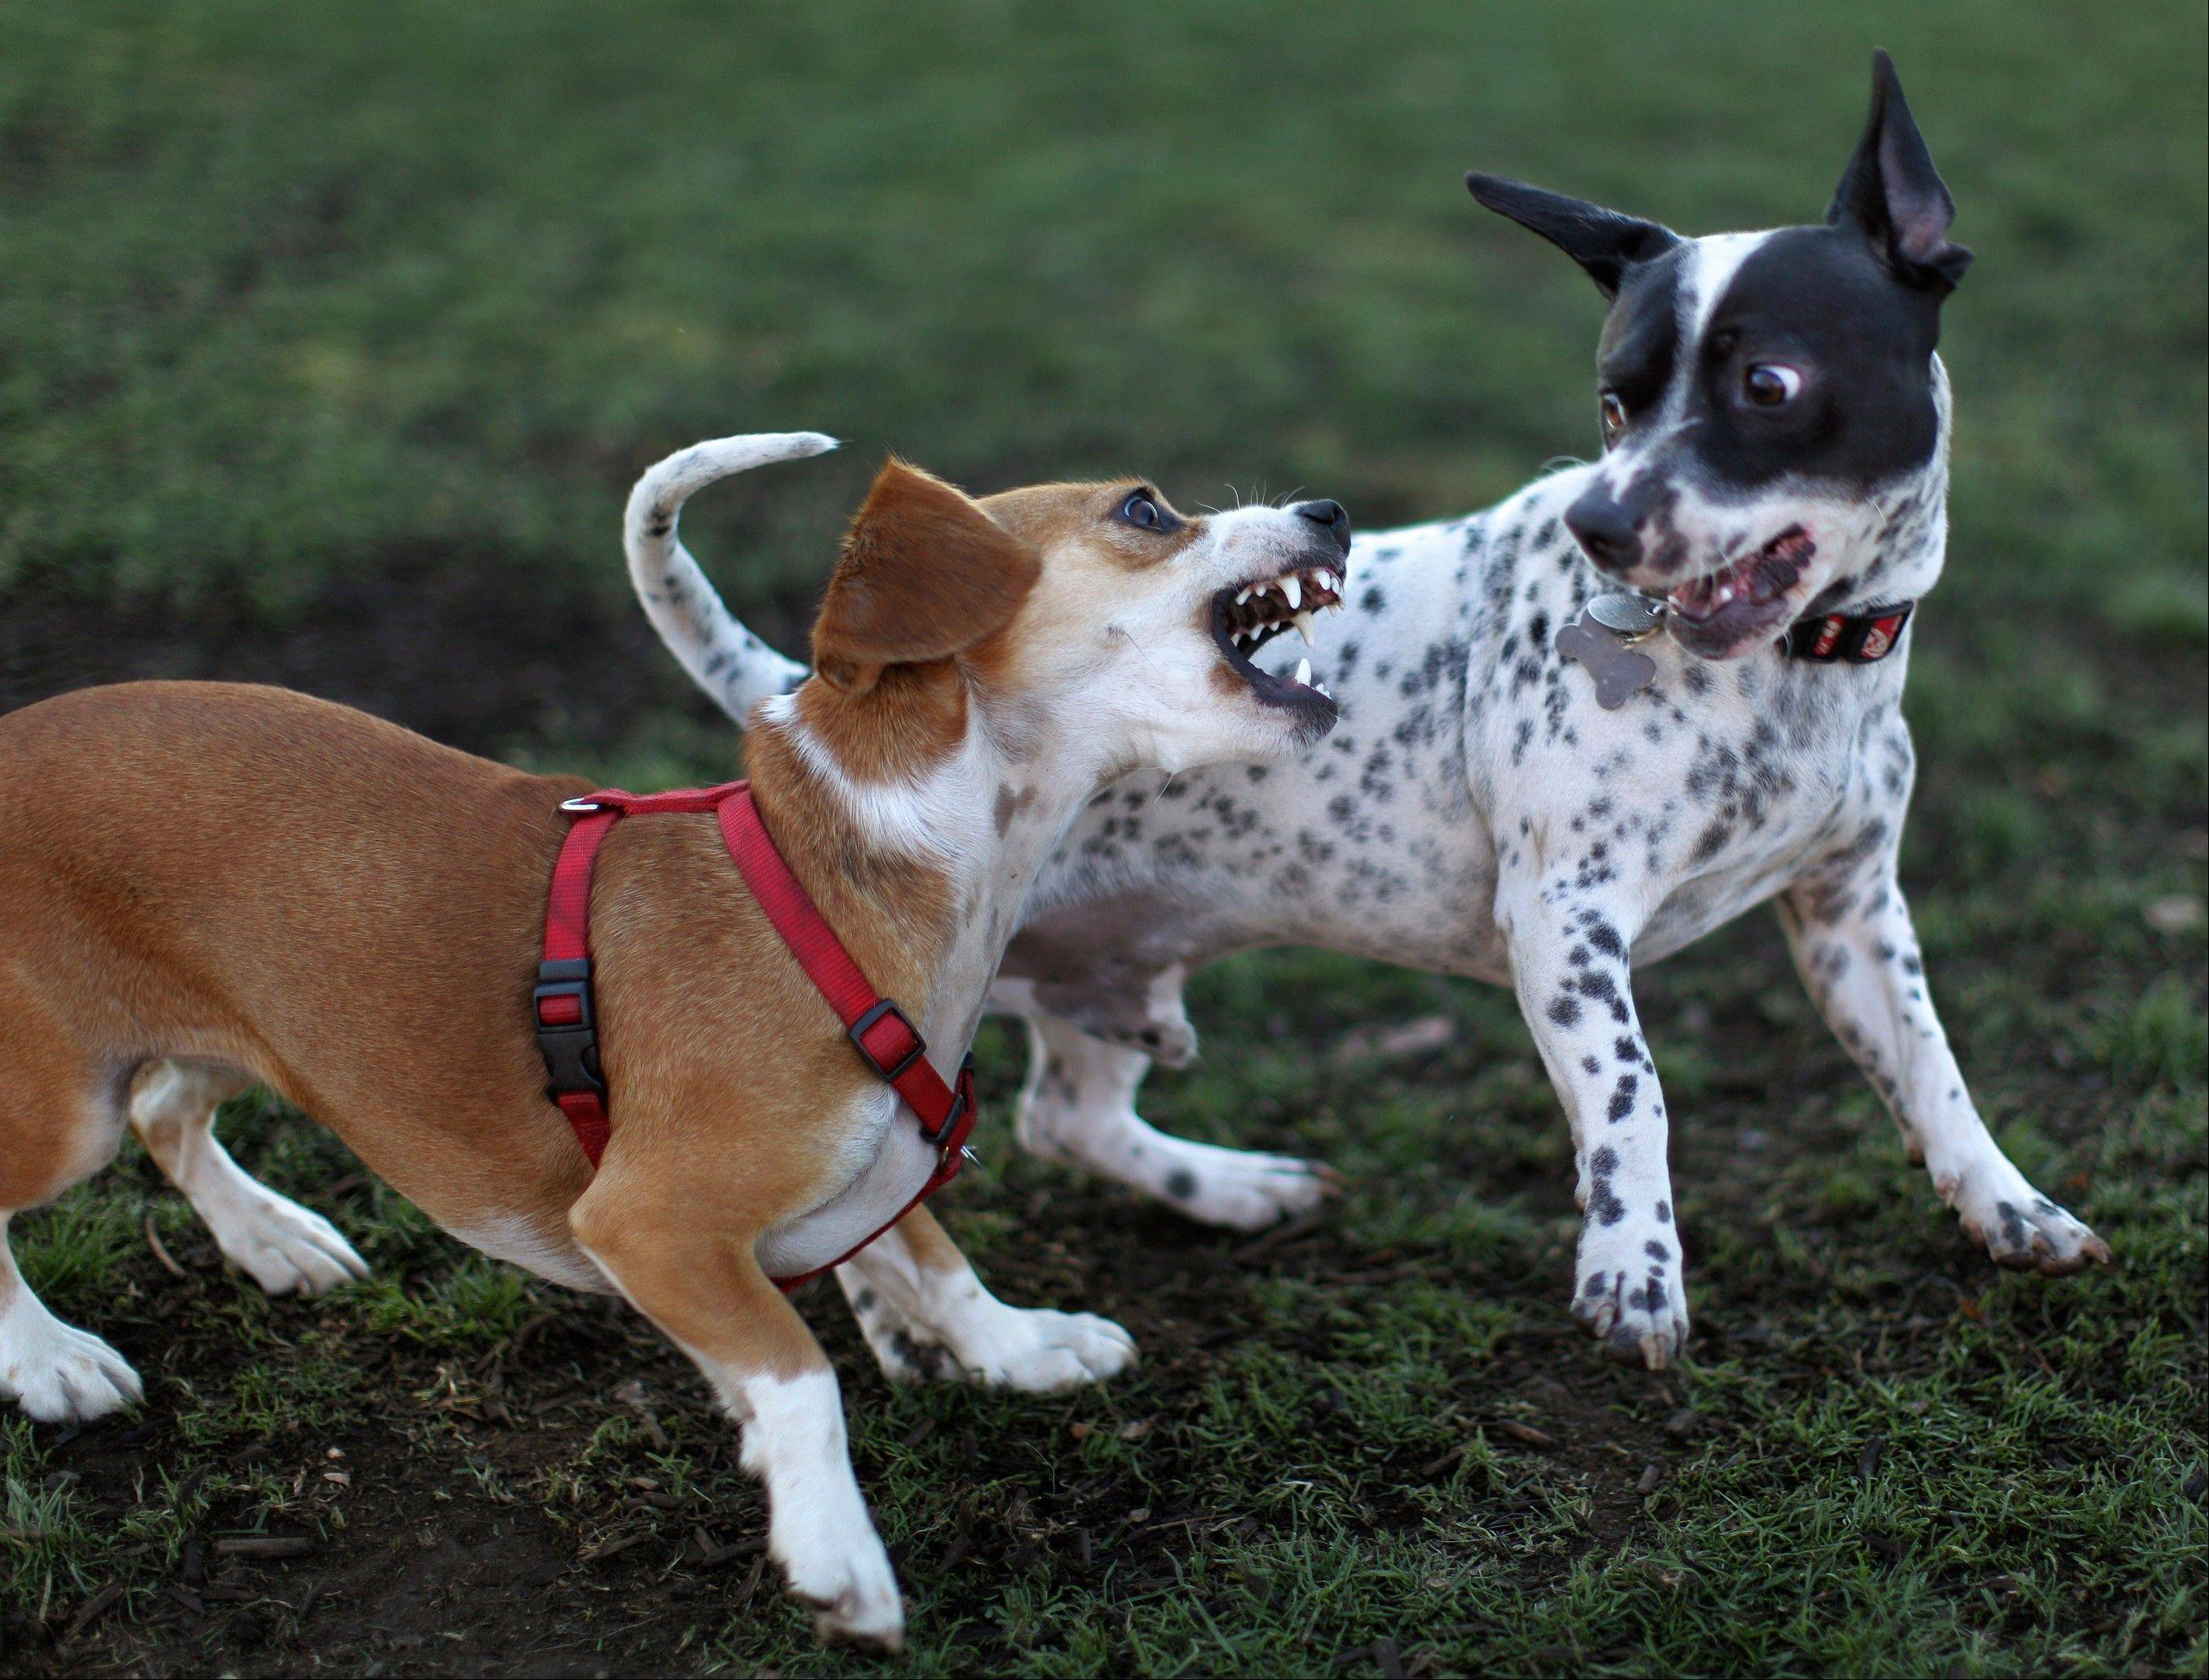 When dogs are playing, snarling and teeth bared usually indicates play is getting too rough, too intense. Problems tend to arise because not everyone recognizes that safe dog play requires human guidance.